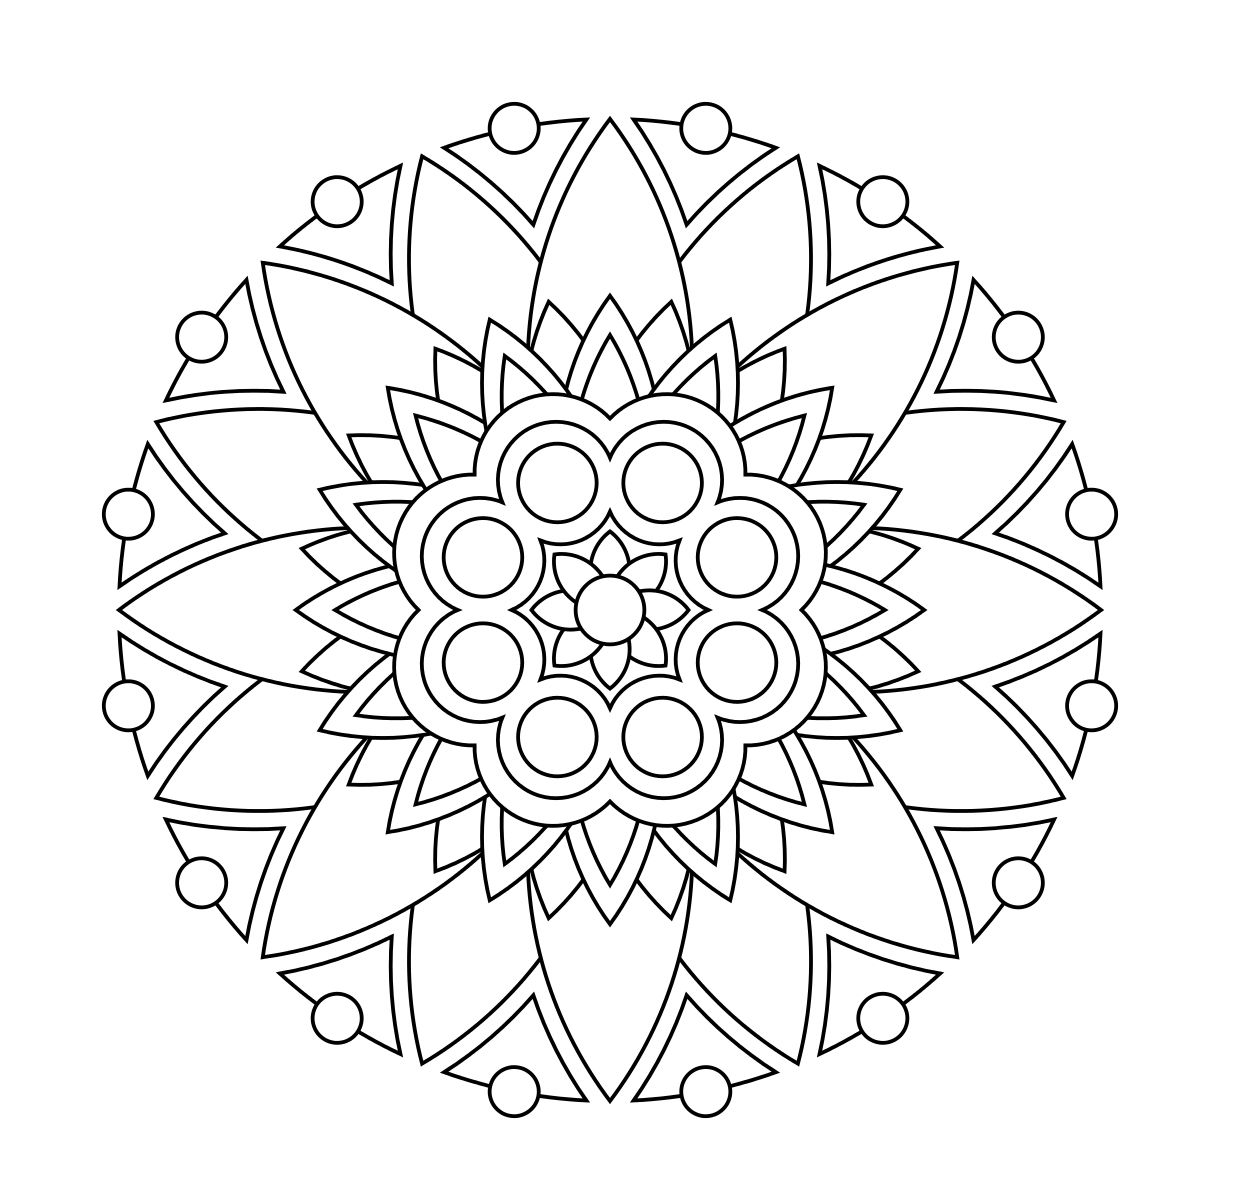 1240x1196 Immediately Meditative Coloring Pages The Best